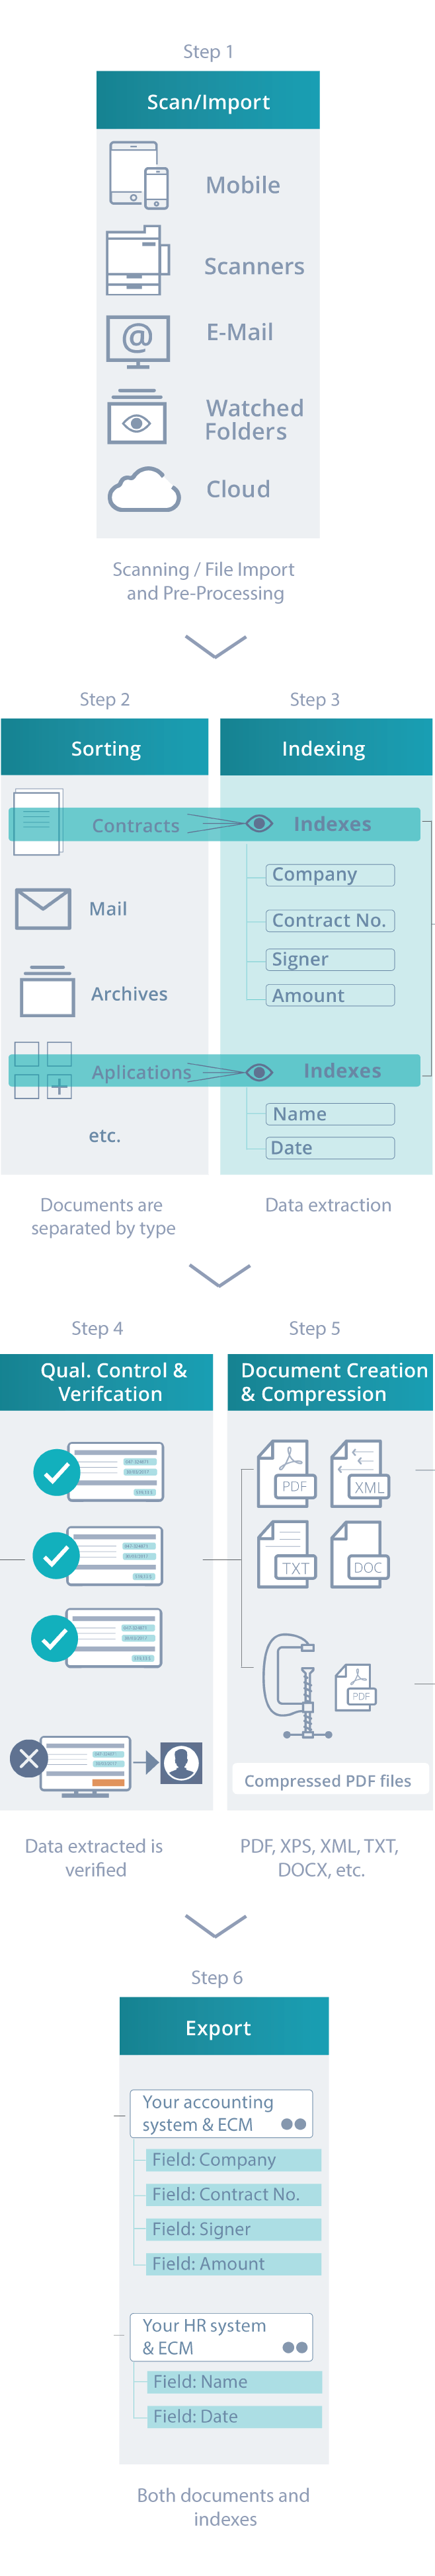 Learn how the IRISPowerscan document processing solution works from scanning/file import and pre-processing via document separation, sorting, data extraction, verification and document creation & compression to export of documents and indexes.